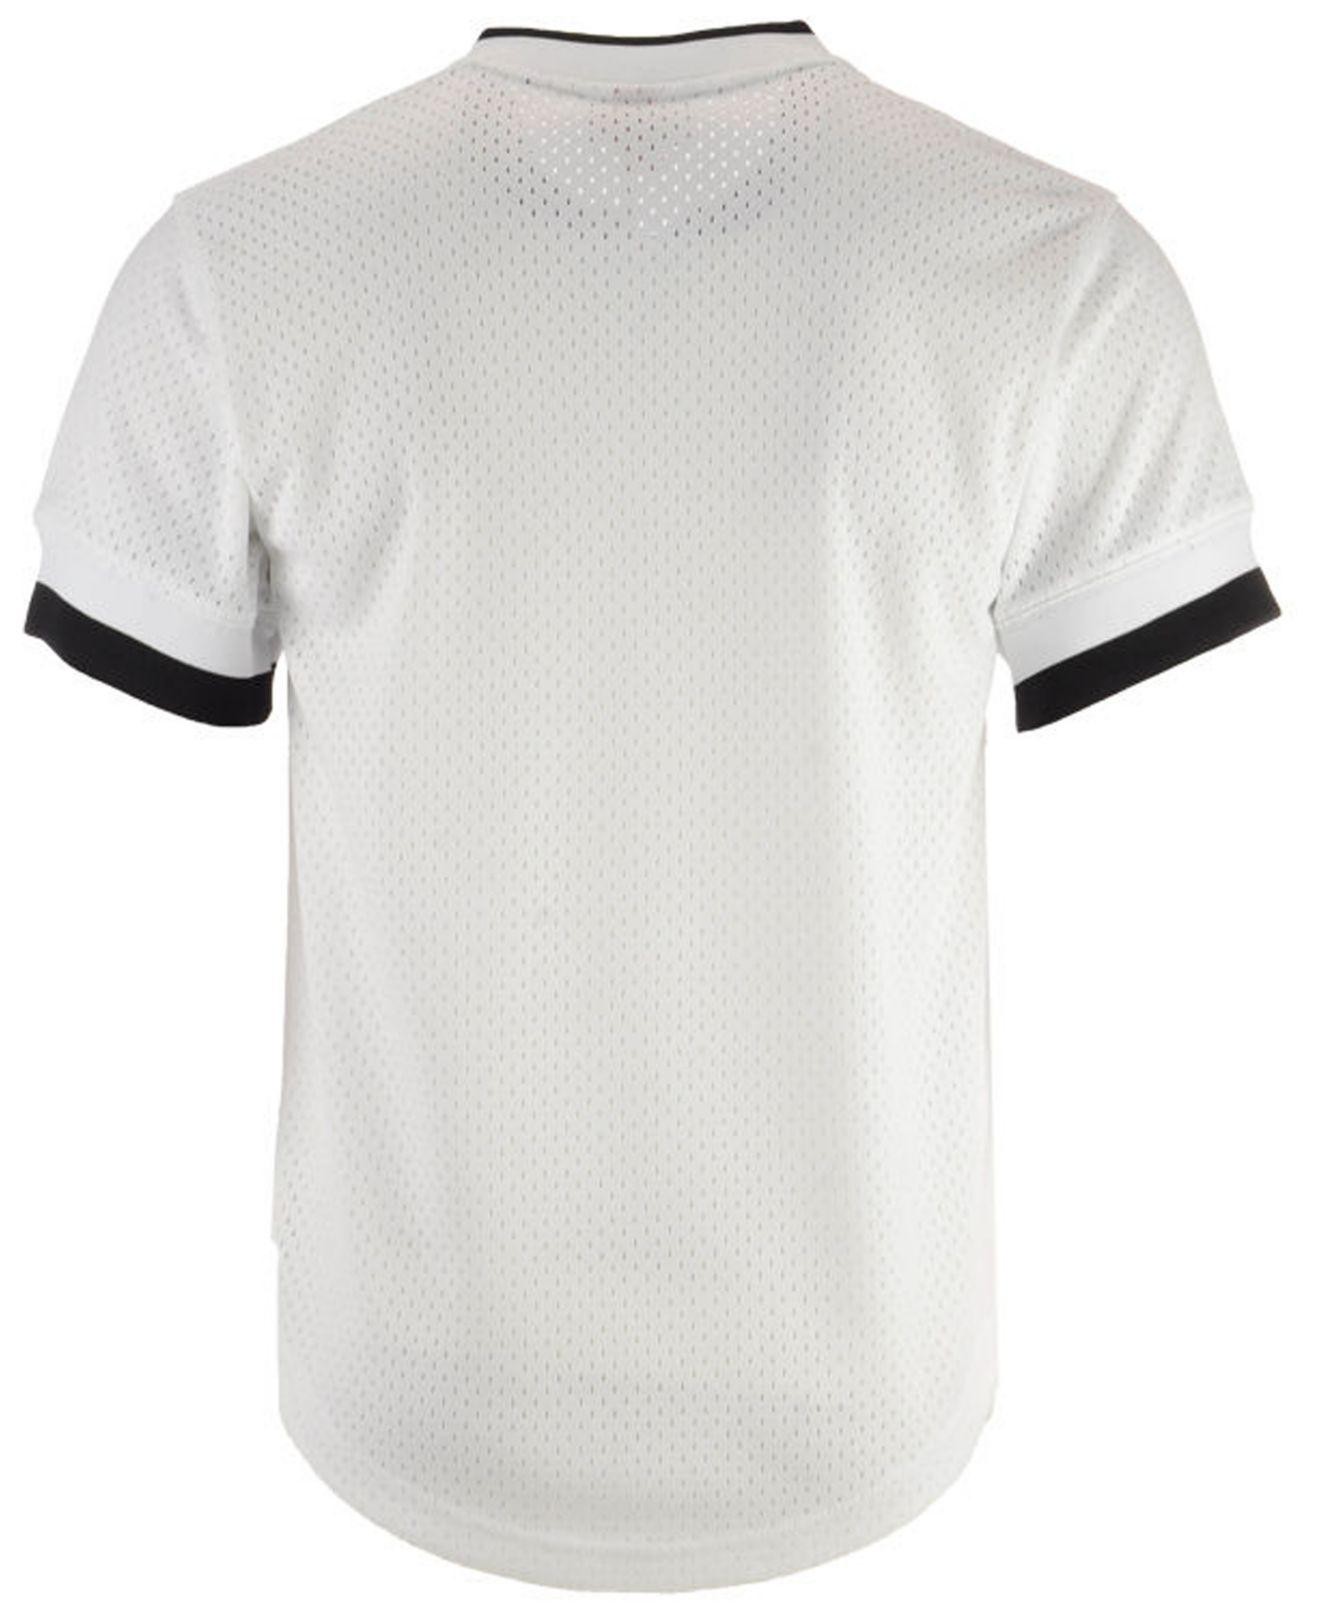 6af72570e Mitchell & Ness New York Yankees Mesh V-neck Jersey in White for Men ...